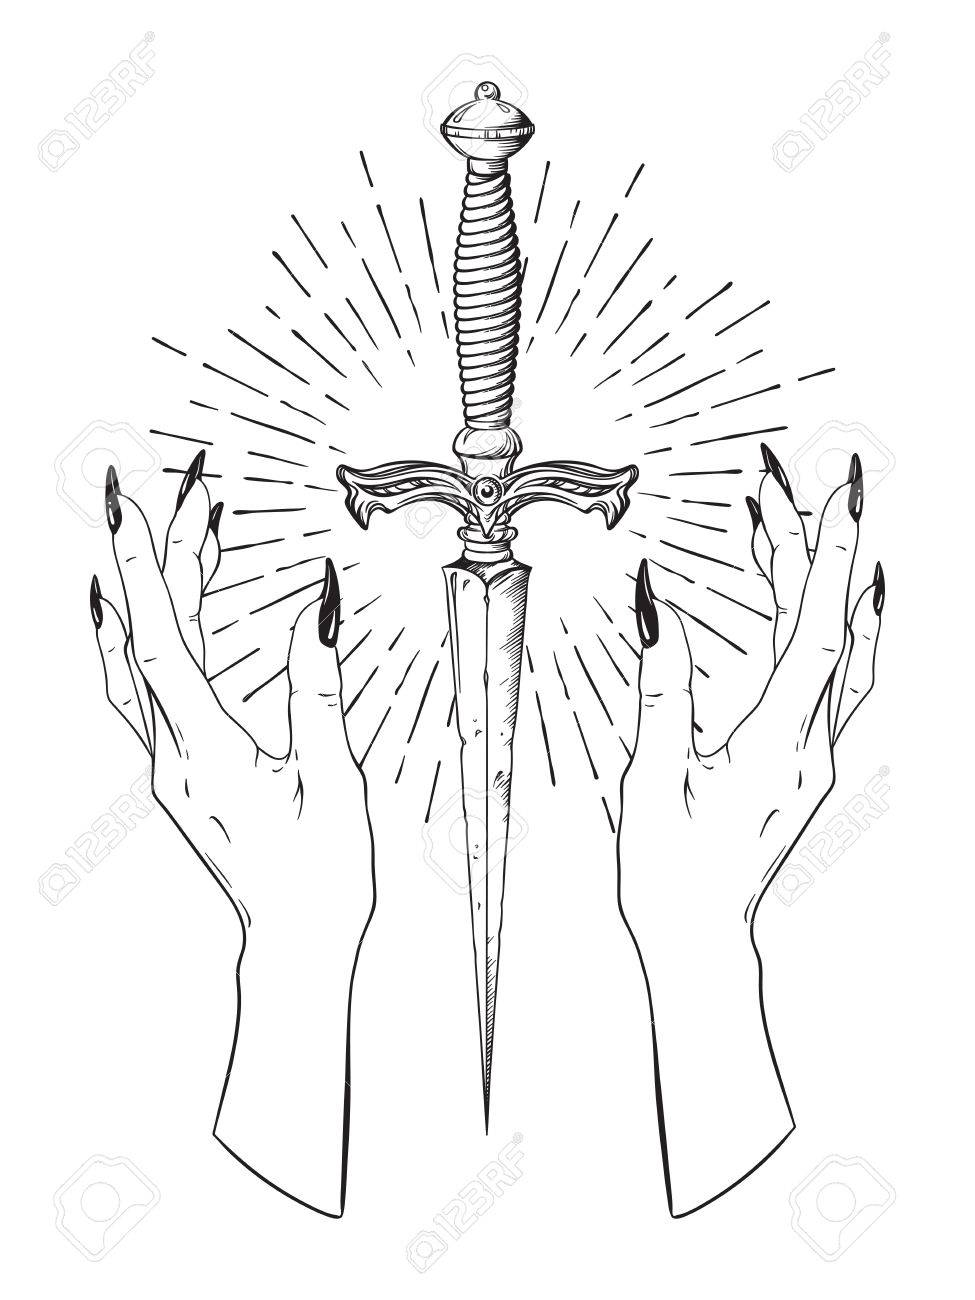 Ritual dagger in female hands with rays of light isolated on white background hand drawn vector illustration. Black work, flash tattoo or print design. - 86737732